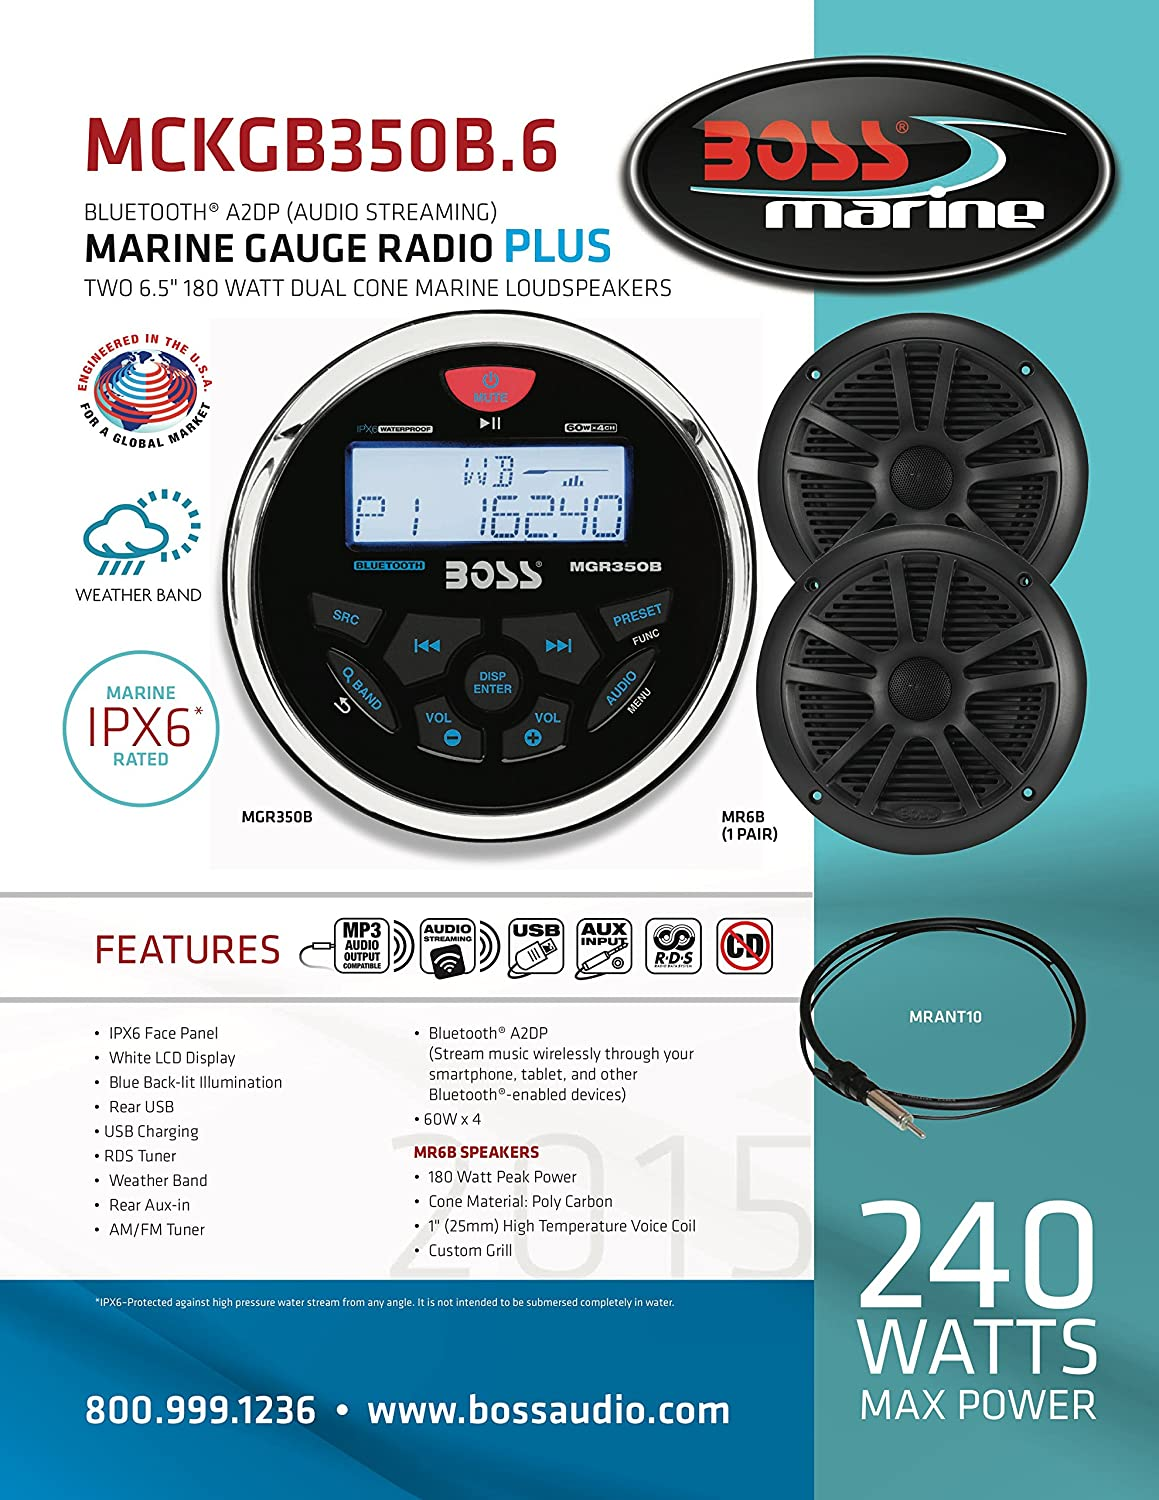 Boss Audio Mckgb350b6 Receiver Speaker Package Marine Radio Speakers Wiring Bluetooth Mp3 Usb Am Fm Stereo No Cd Dvd Two 65 Inch Antenna